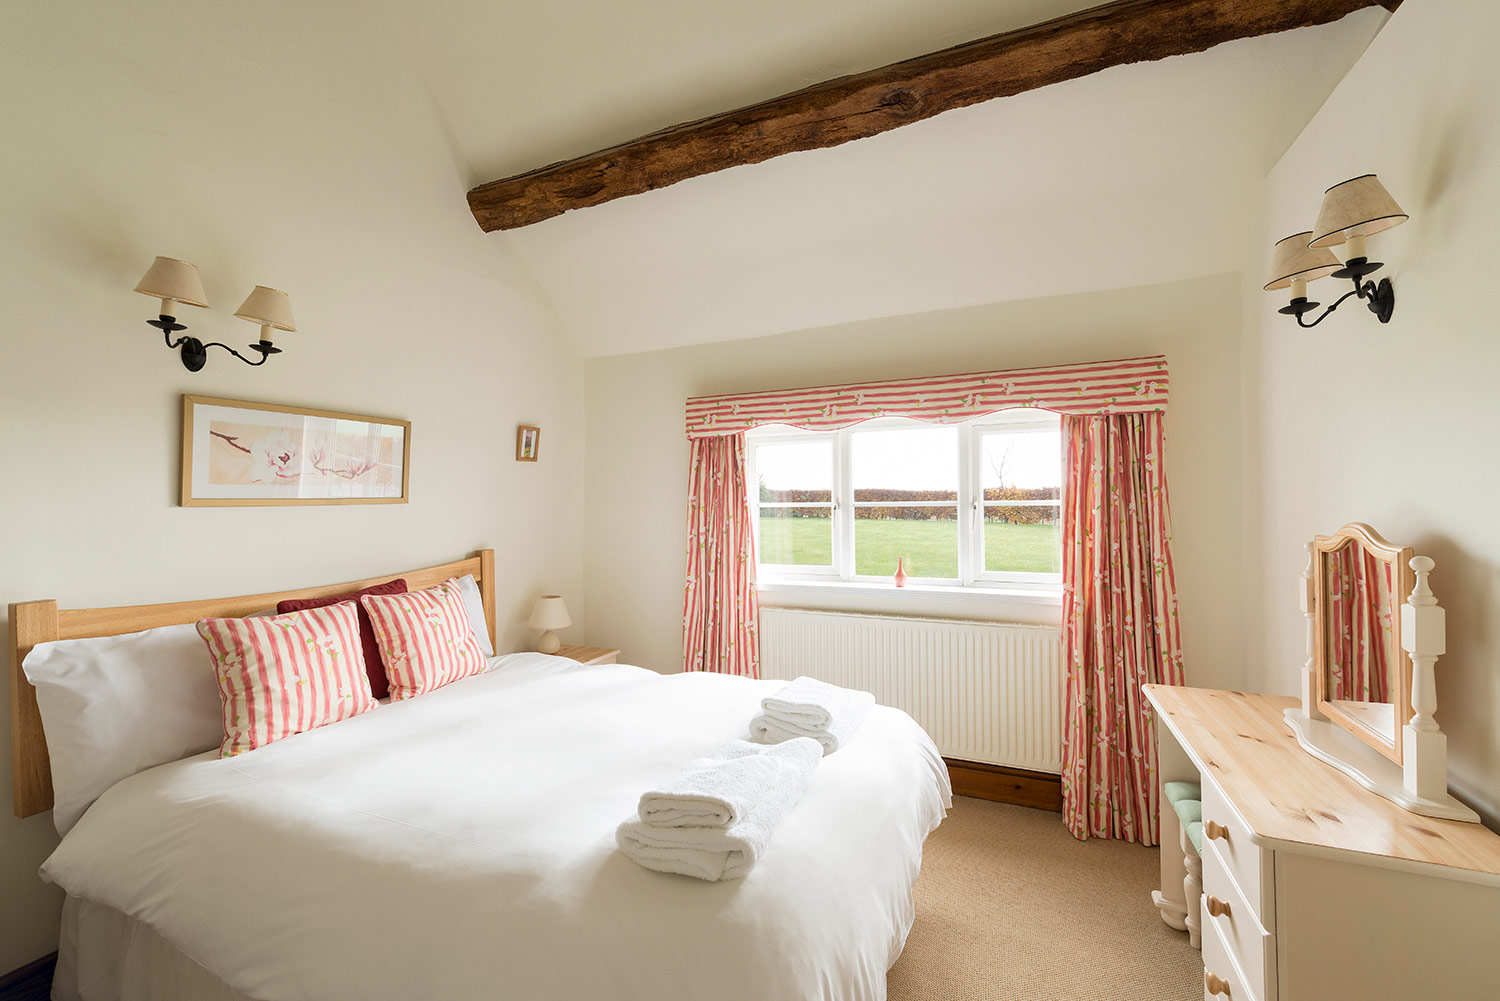 Top quality bed linen at our luxury holiday cottages in the heart of England | Upper Rectory Farm Cottages